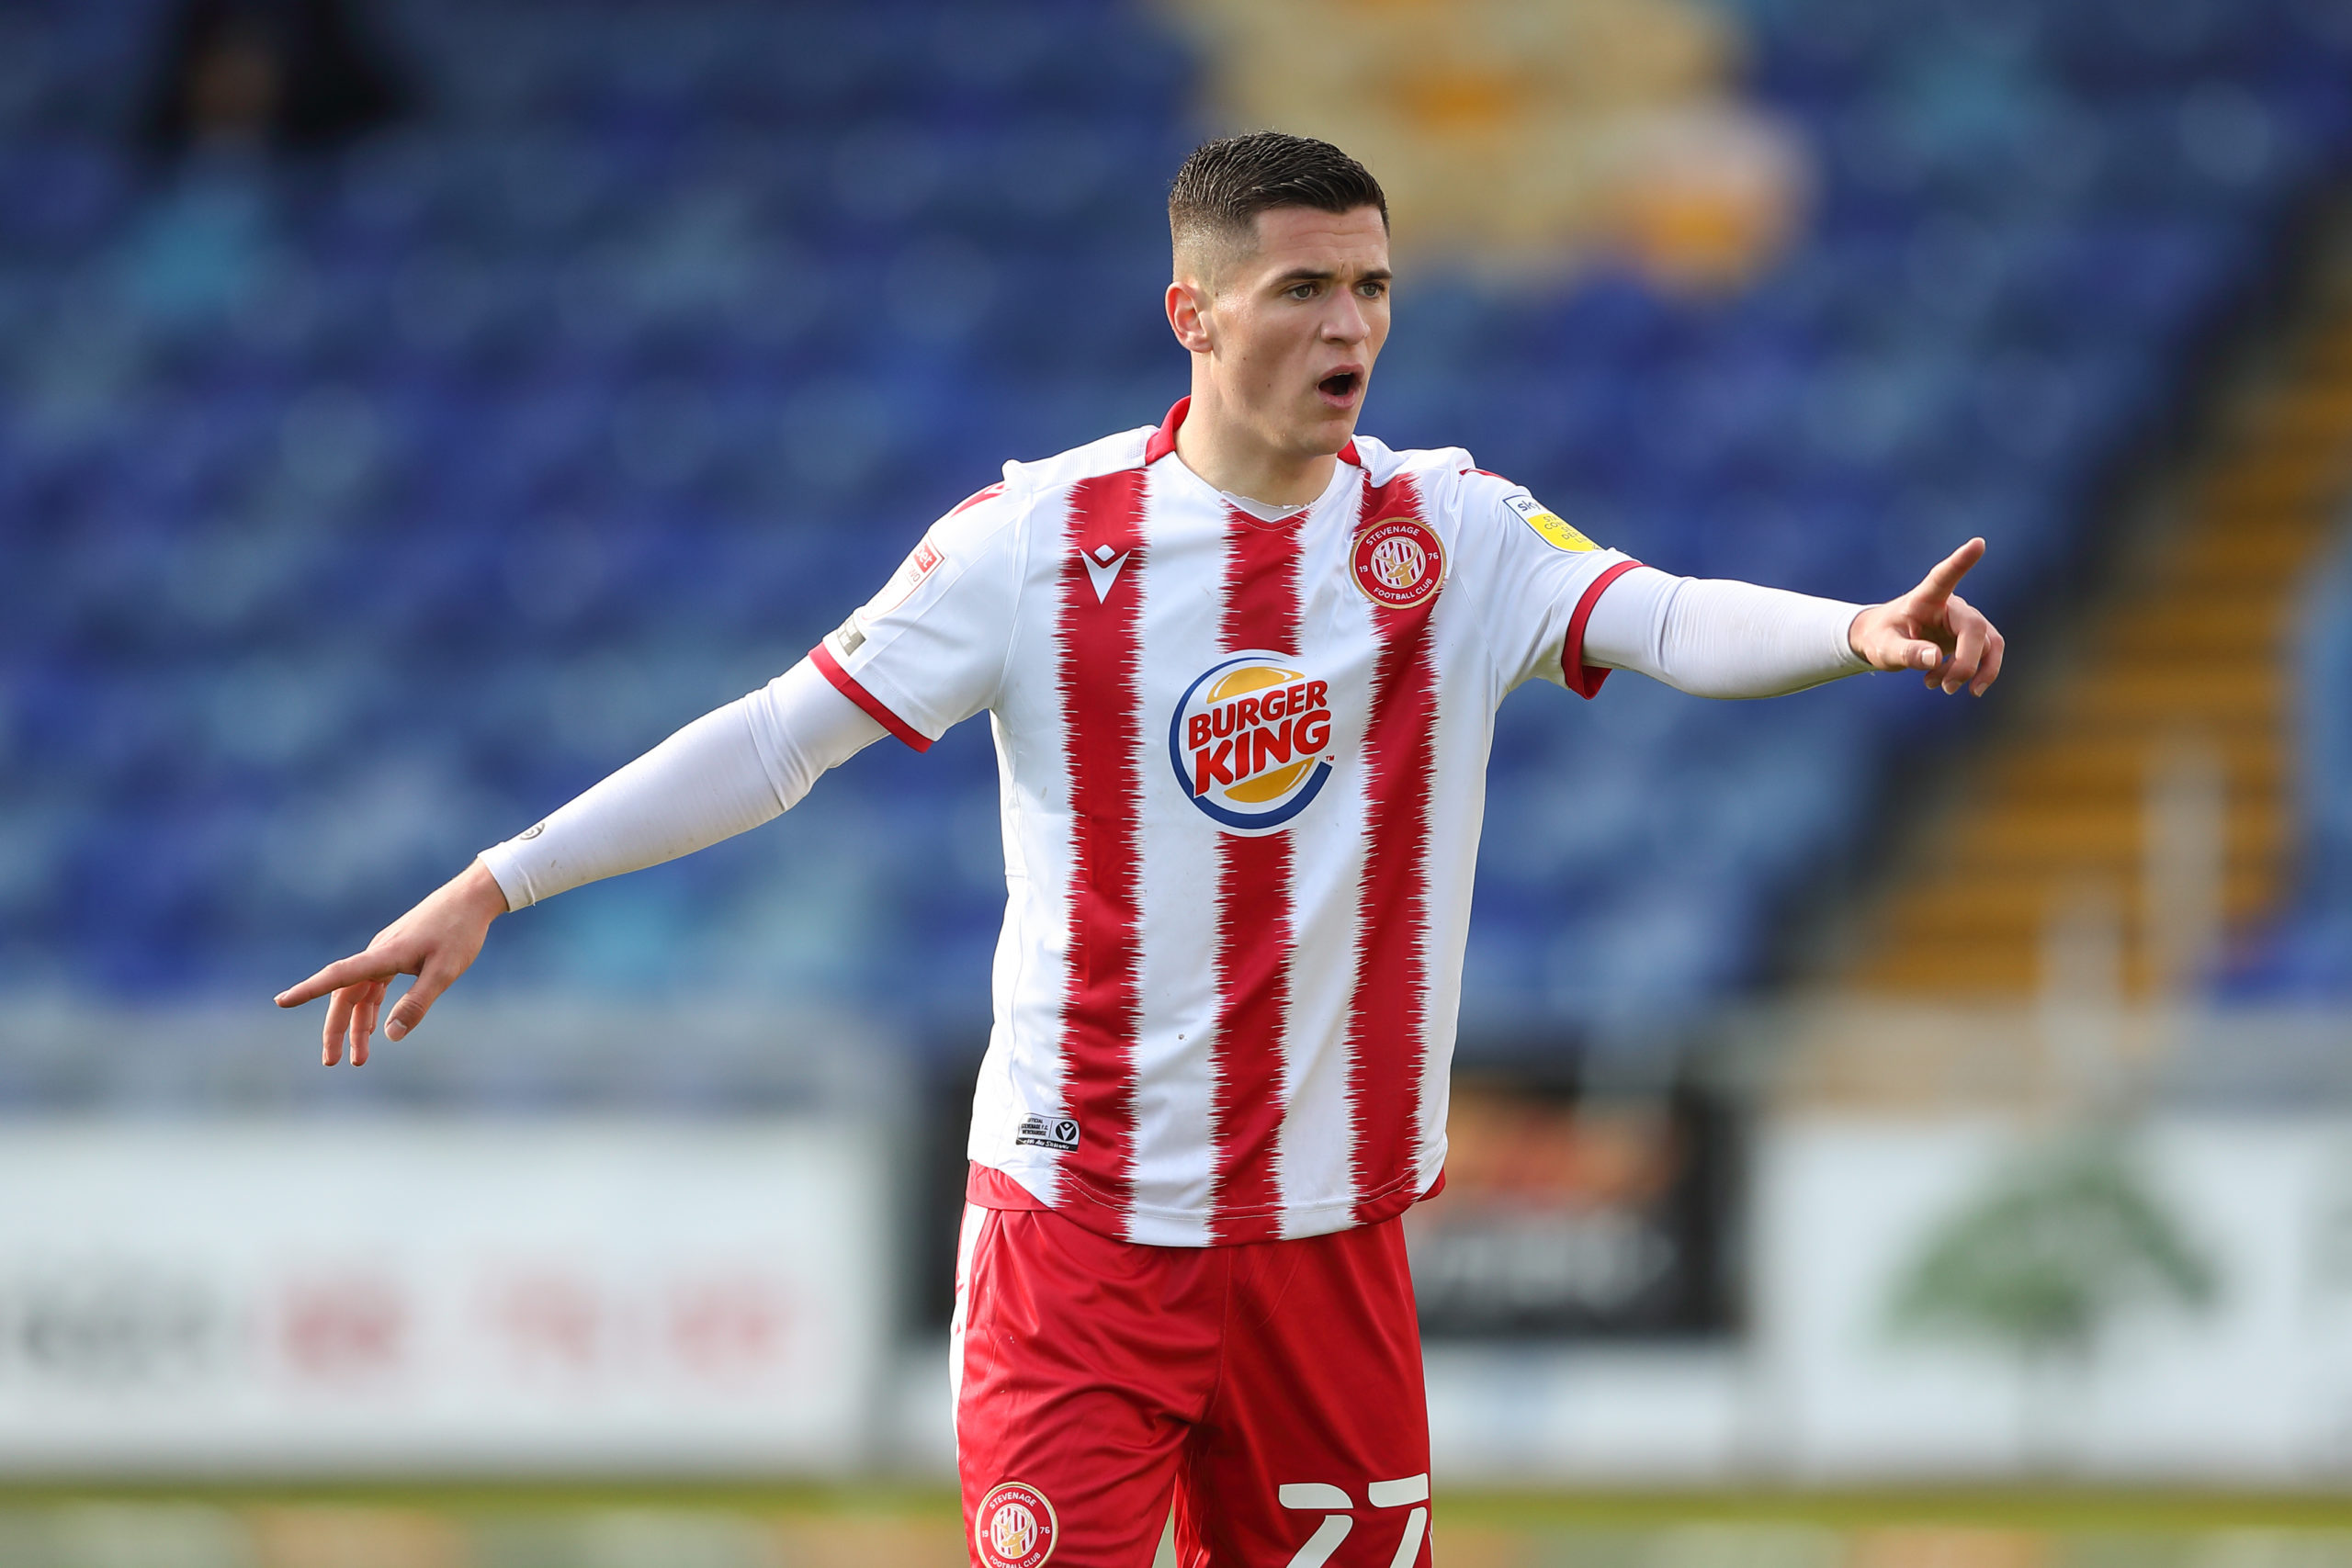 Former Celtic striker Jack Aitchison in action for Stevenage